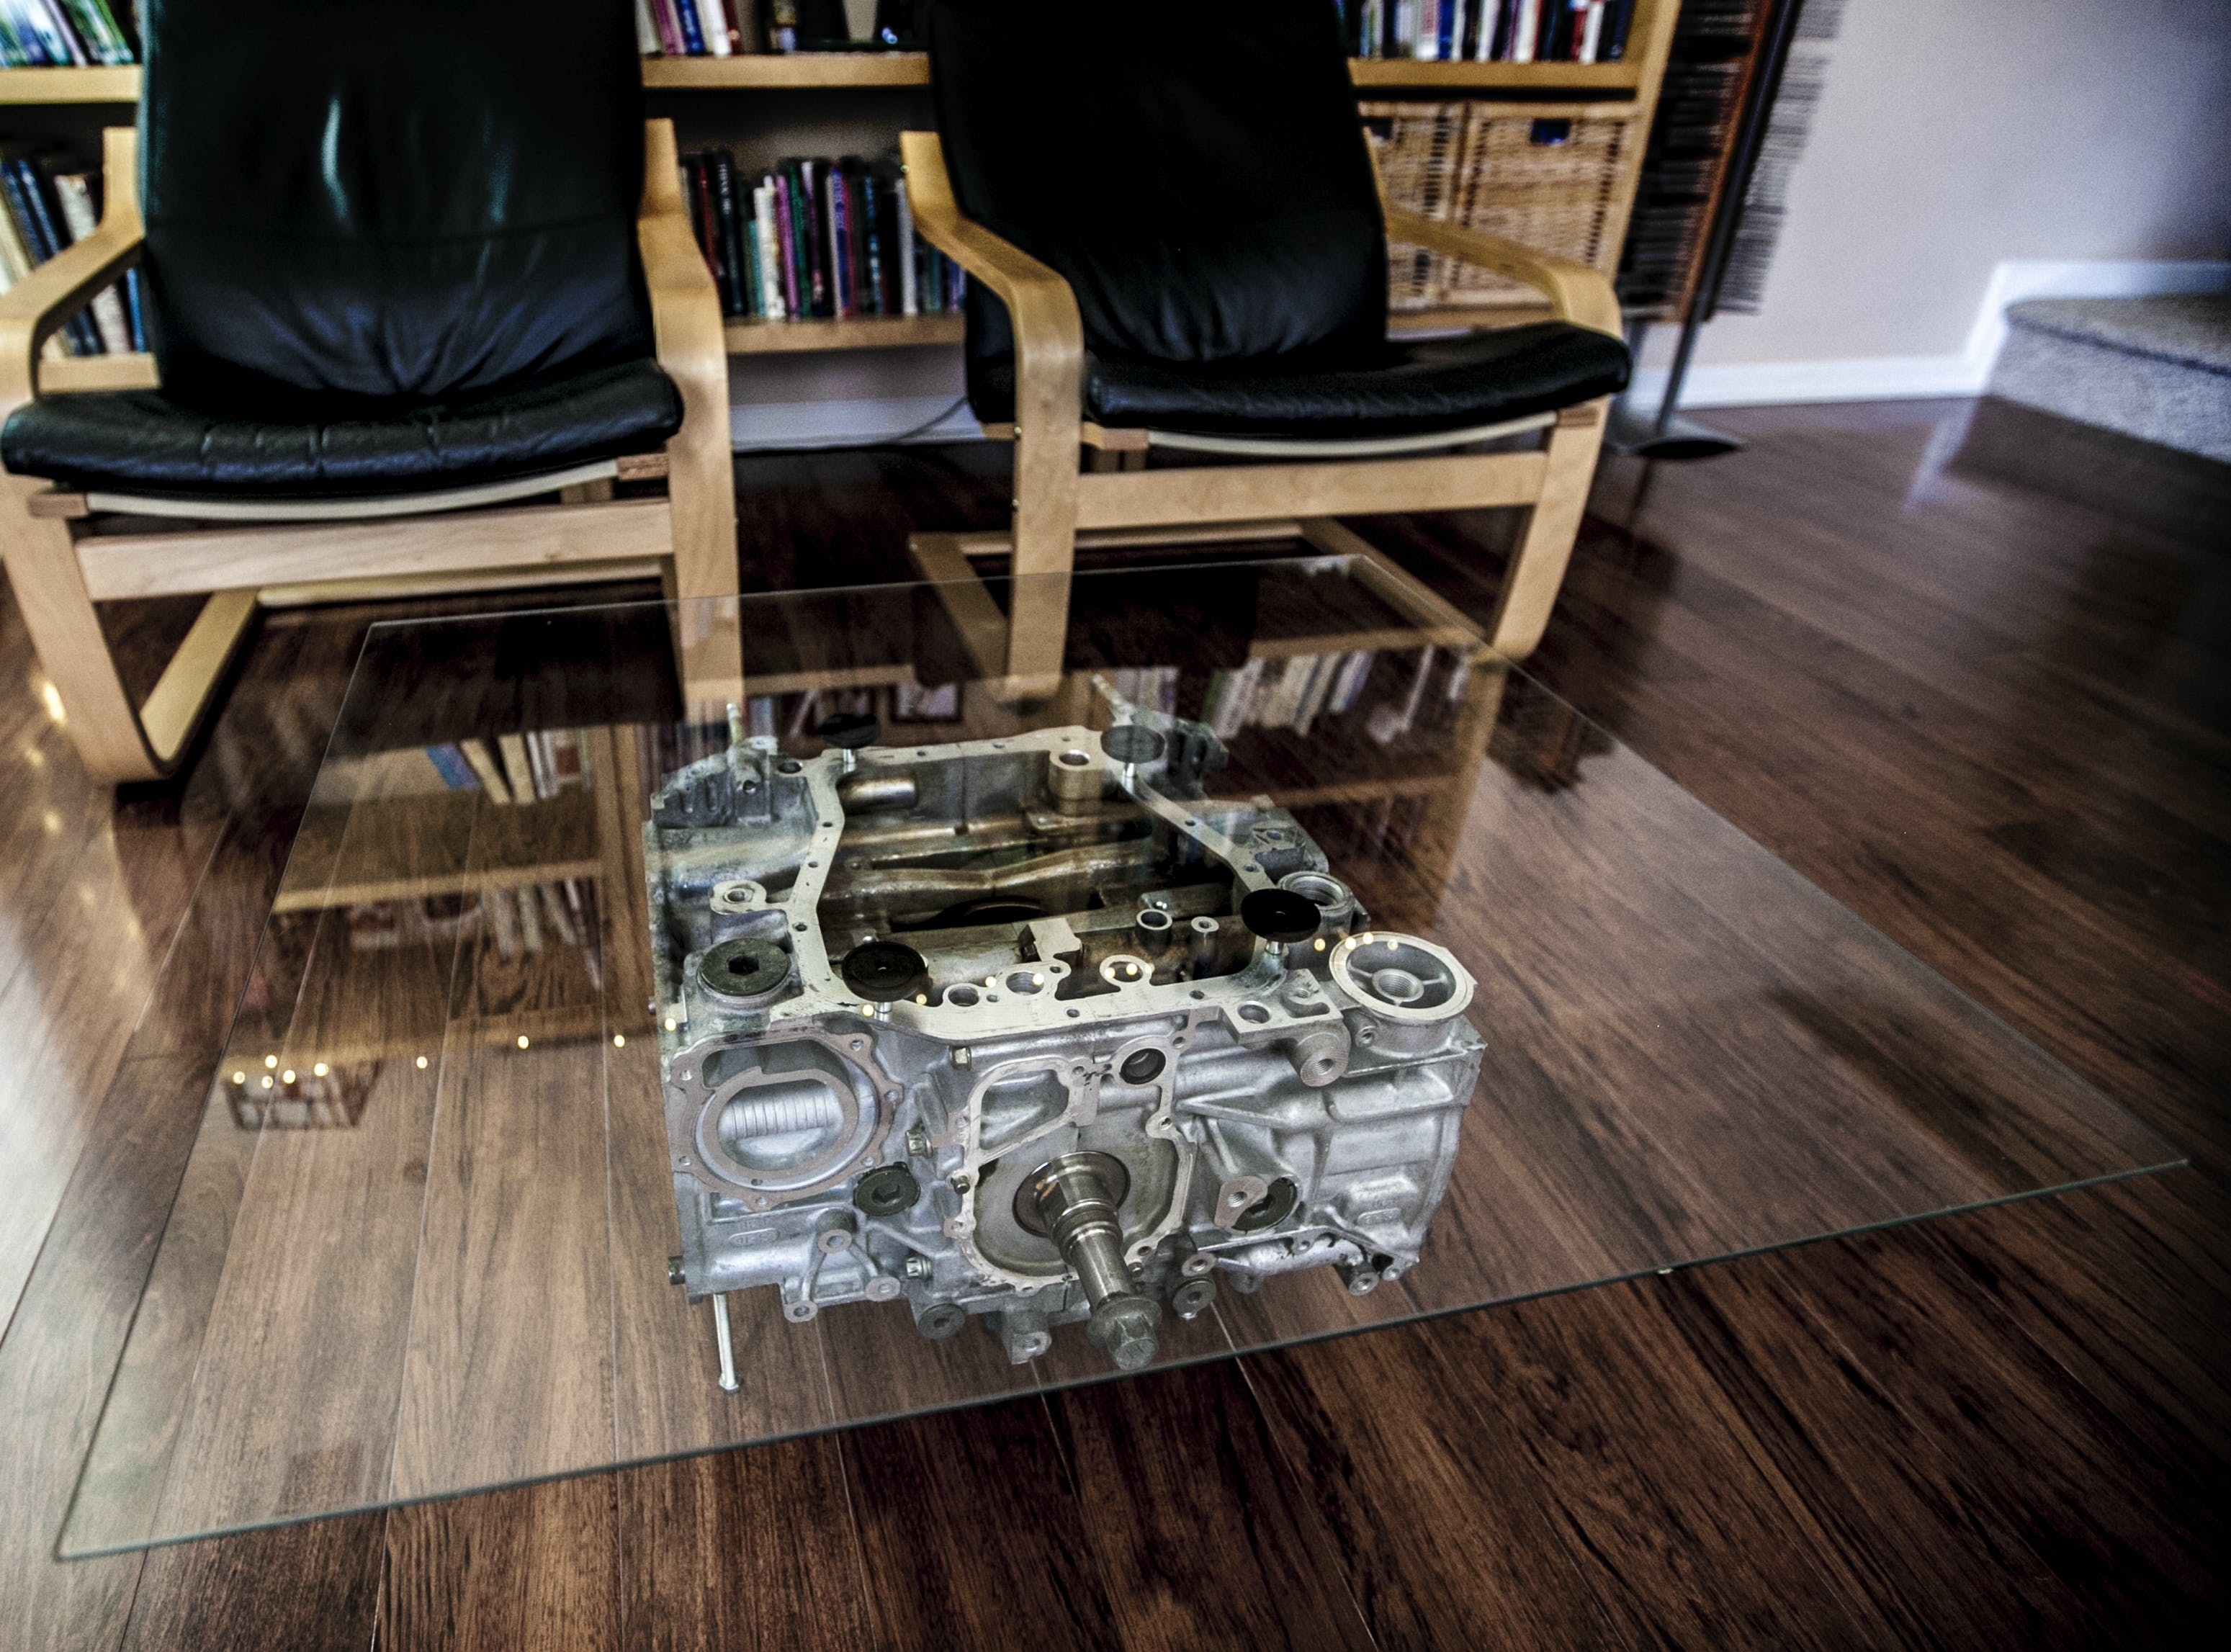 Engine Block Coffee Tables Martin Ronaszegi